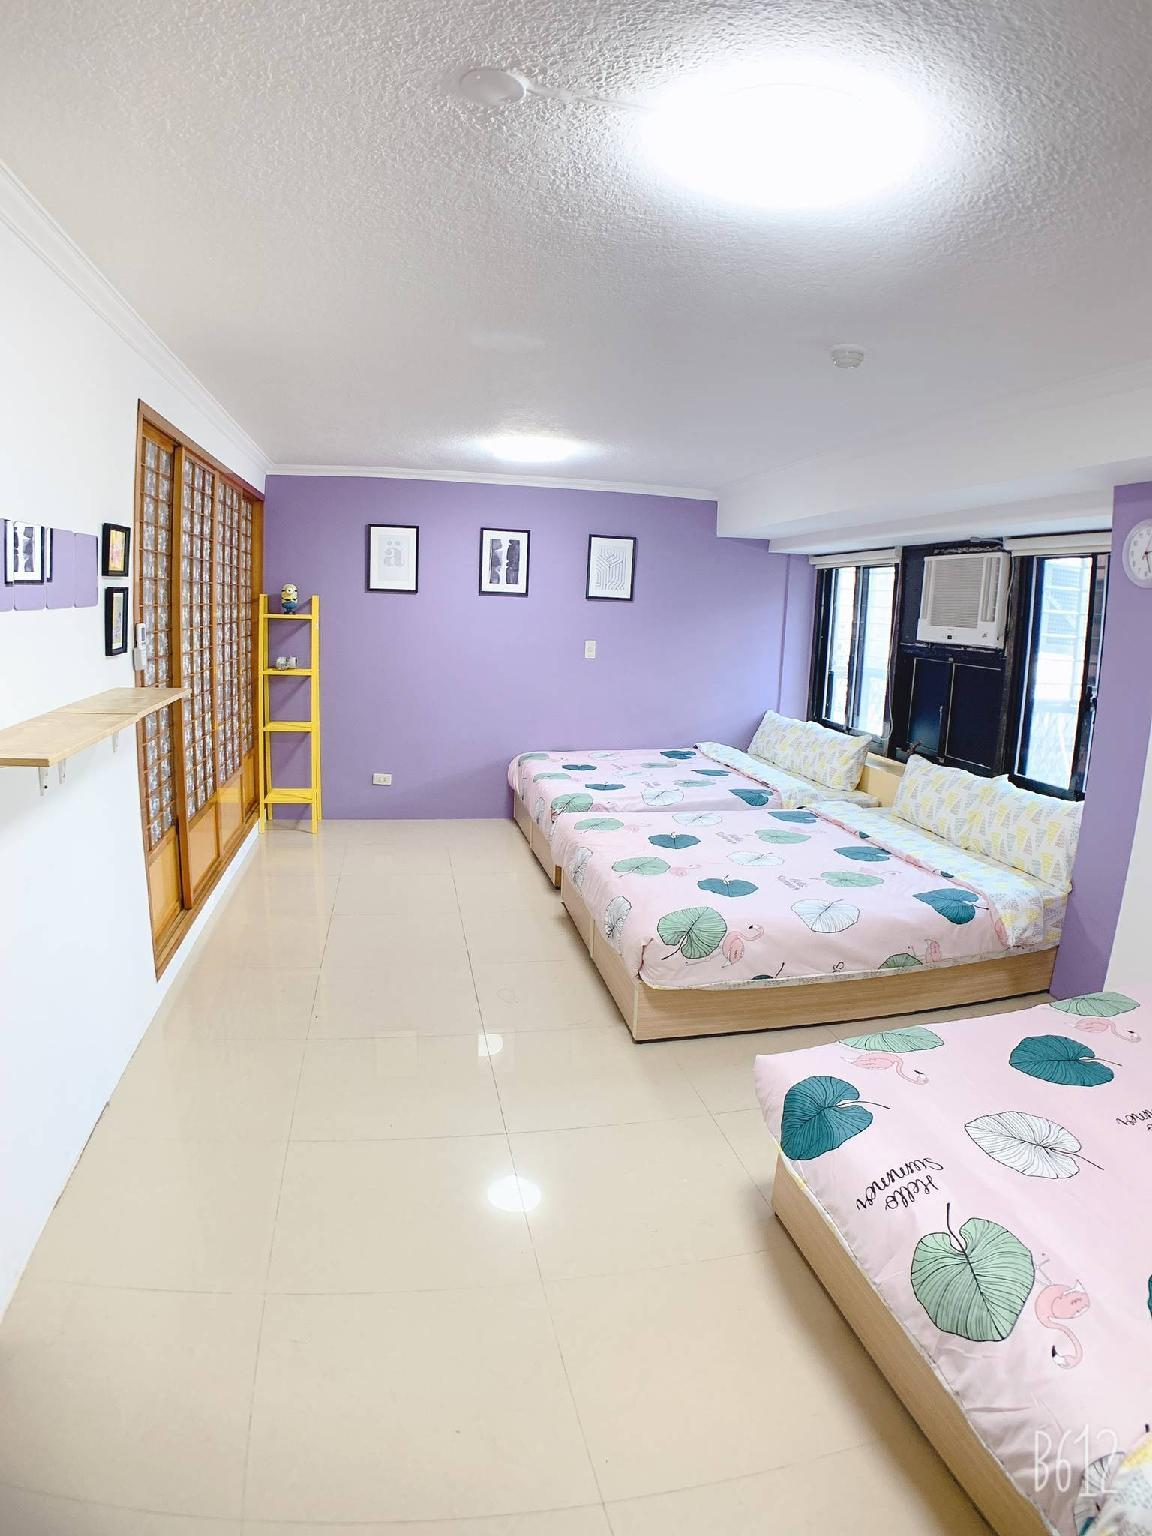 Prime Condo For 3 8 People@ MRT Ximen Station